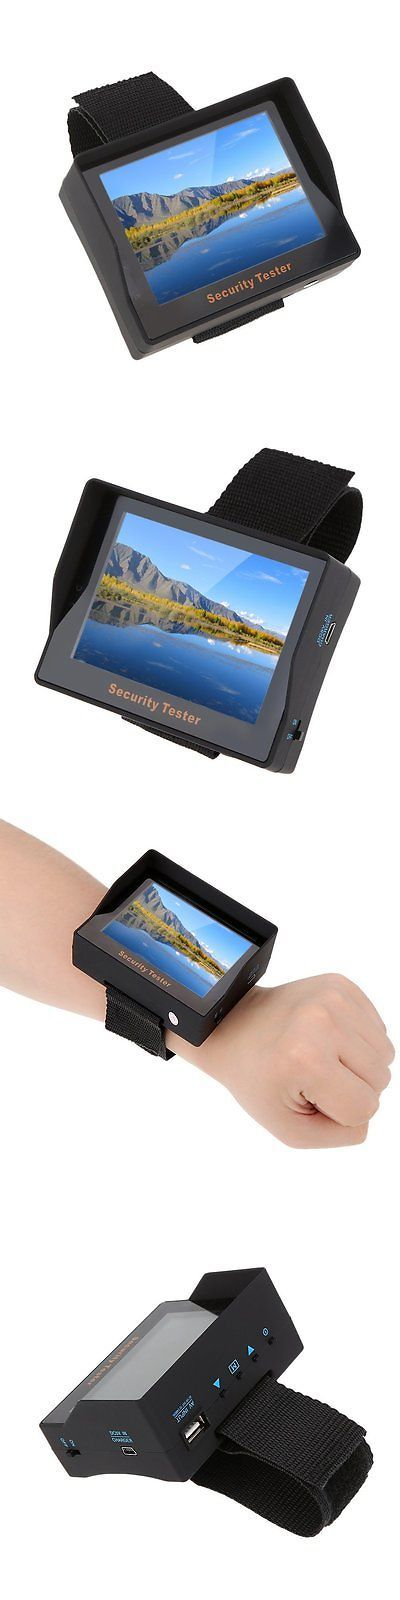 Surveillance Monitors Displays: Kkmoon 3.5 Tft Color Led Portable Test Monitor Cctv Camera Security Tester For -> BUY IT NOW ONLY: $44.74 on eBay!